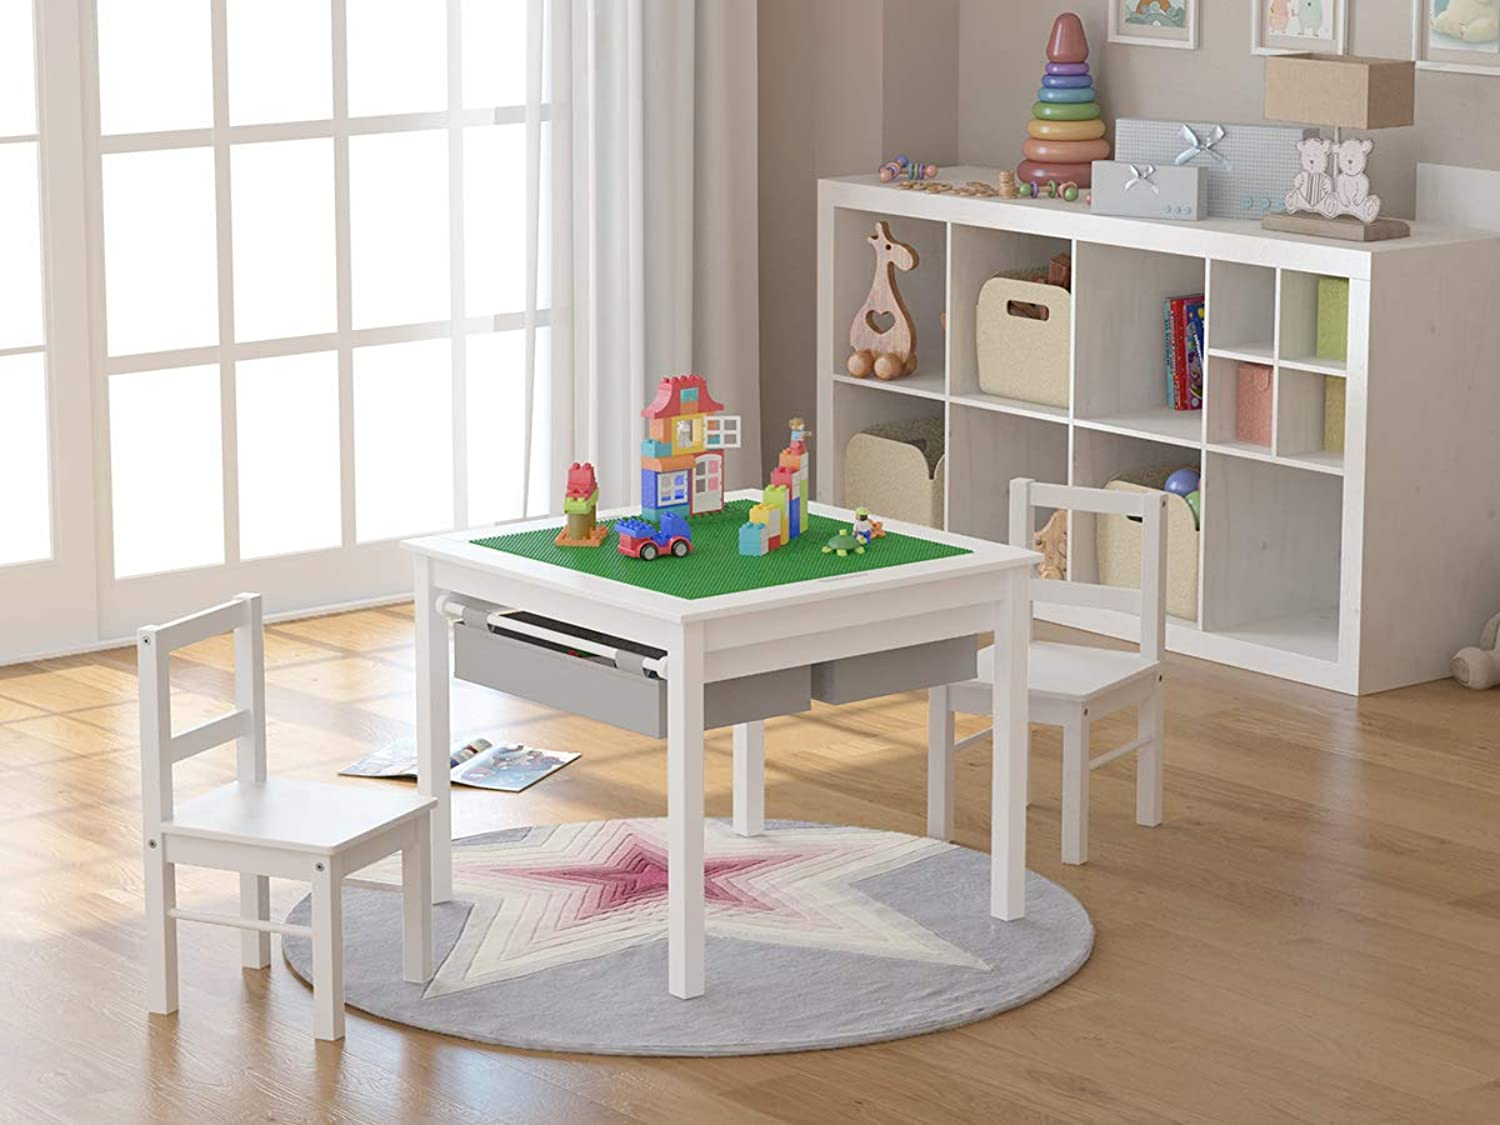 UTEX Table Set 2 in 1 Weiß with grau